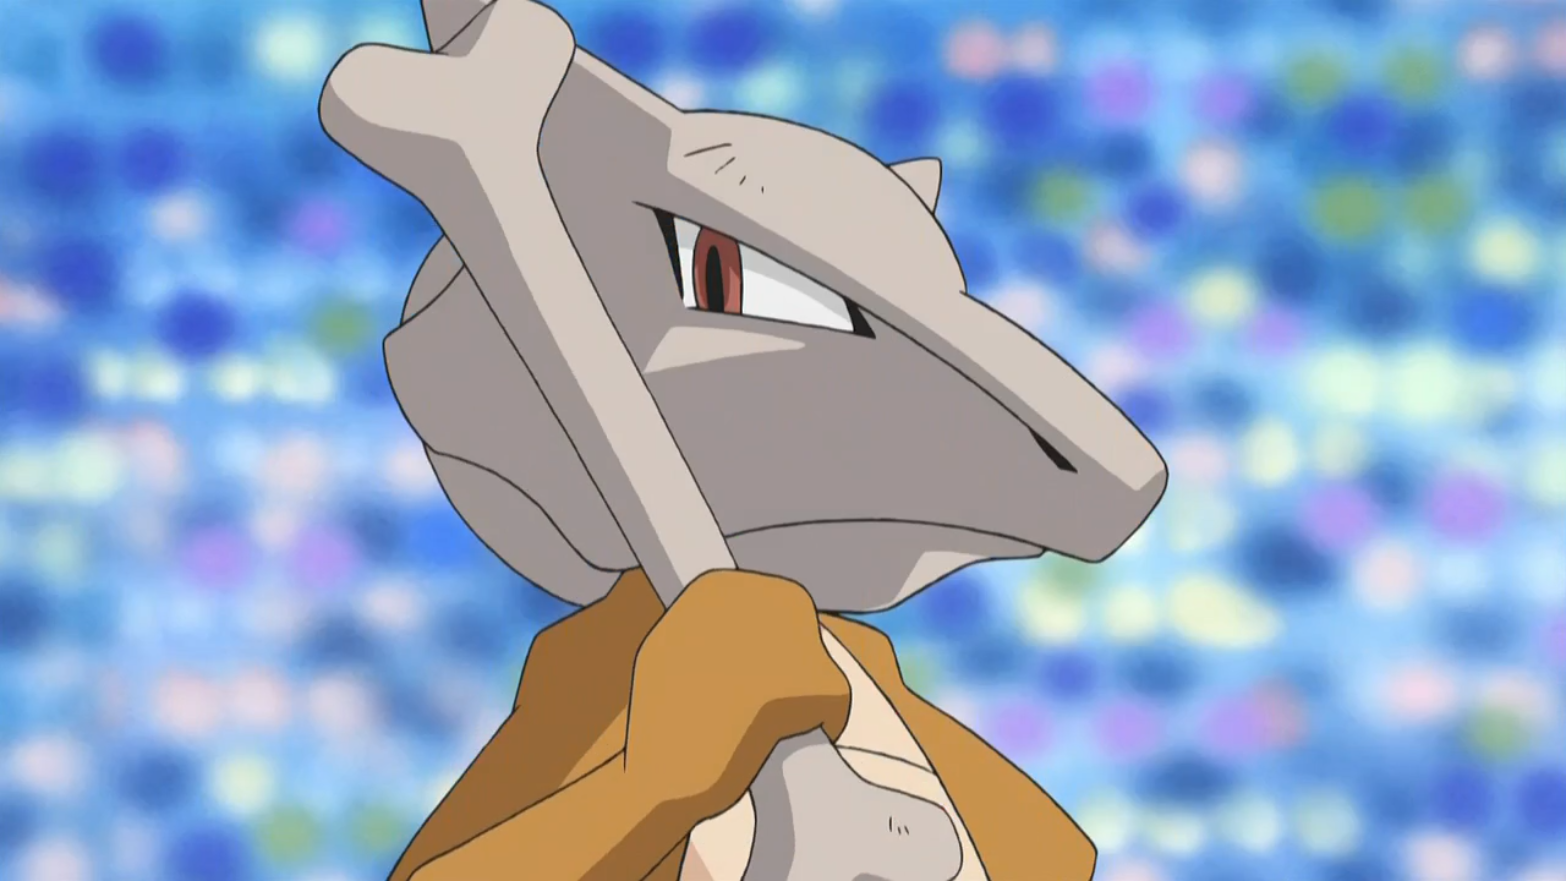 Marowak was Halverson's partner in the Ping Pong Tournament.